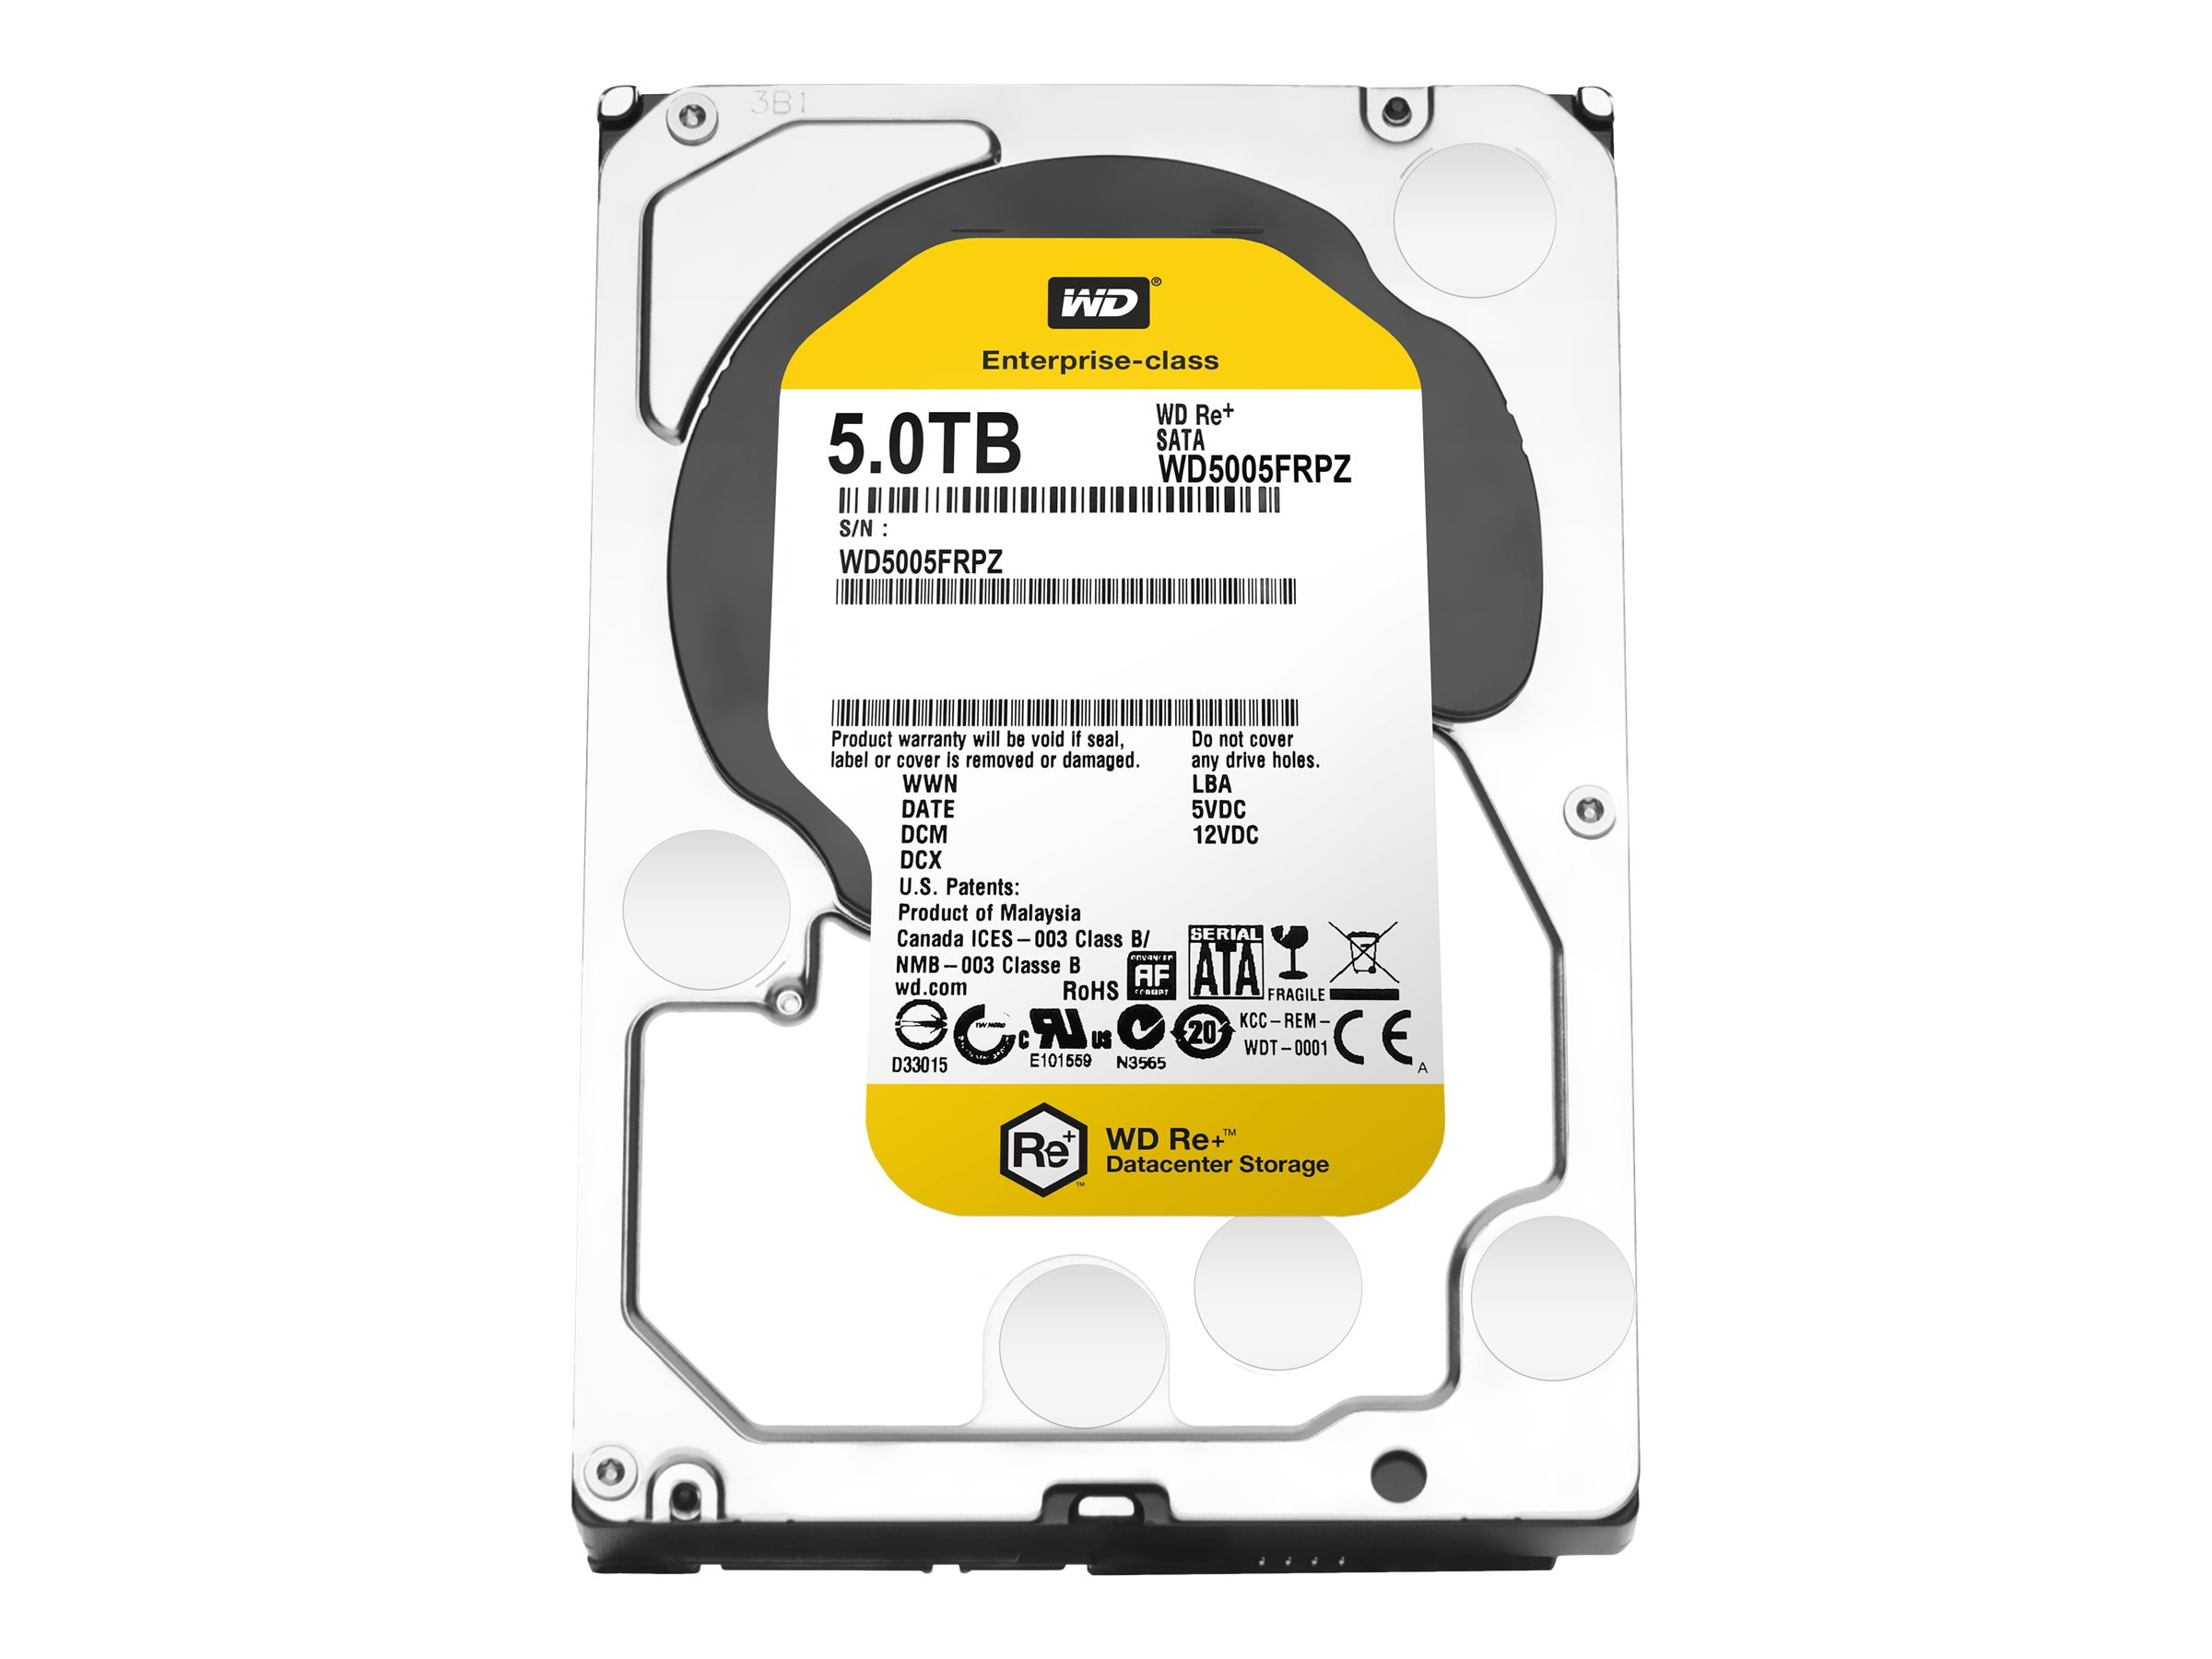 WD 5TB WD Re+ Datacenter Capacity SATA 6Gb s 3.5 Internal Hard Drive, WD5005FRPZ, 22706215, Hard Drives - Internal